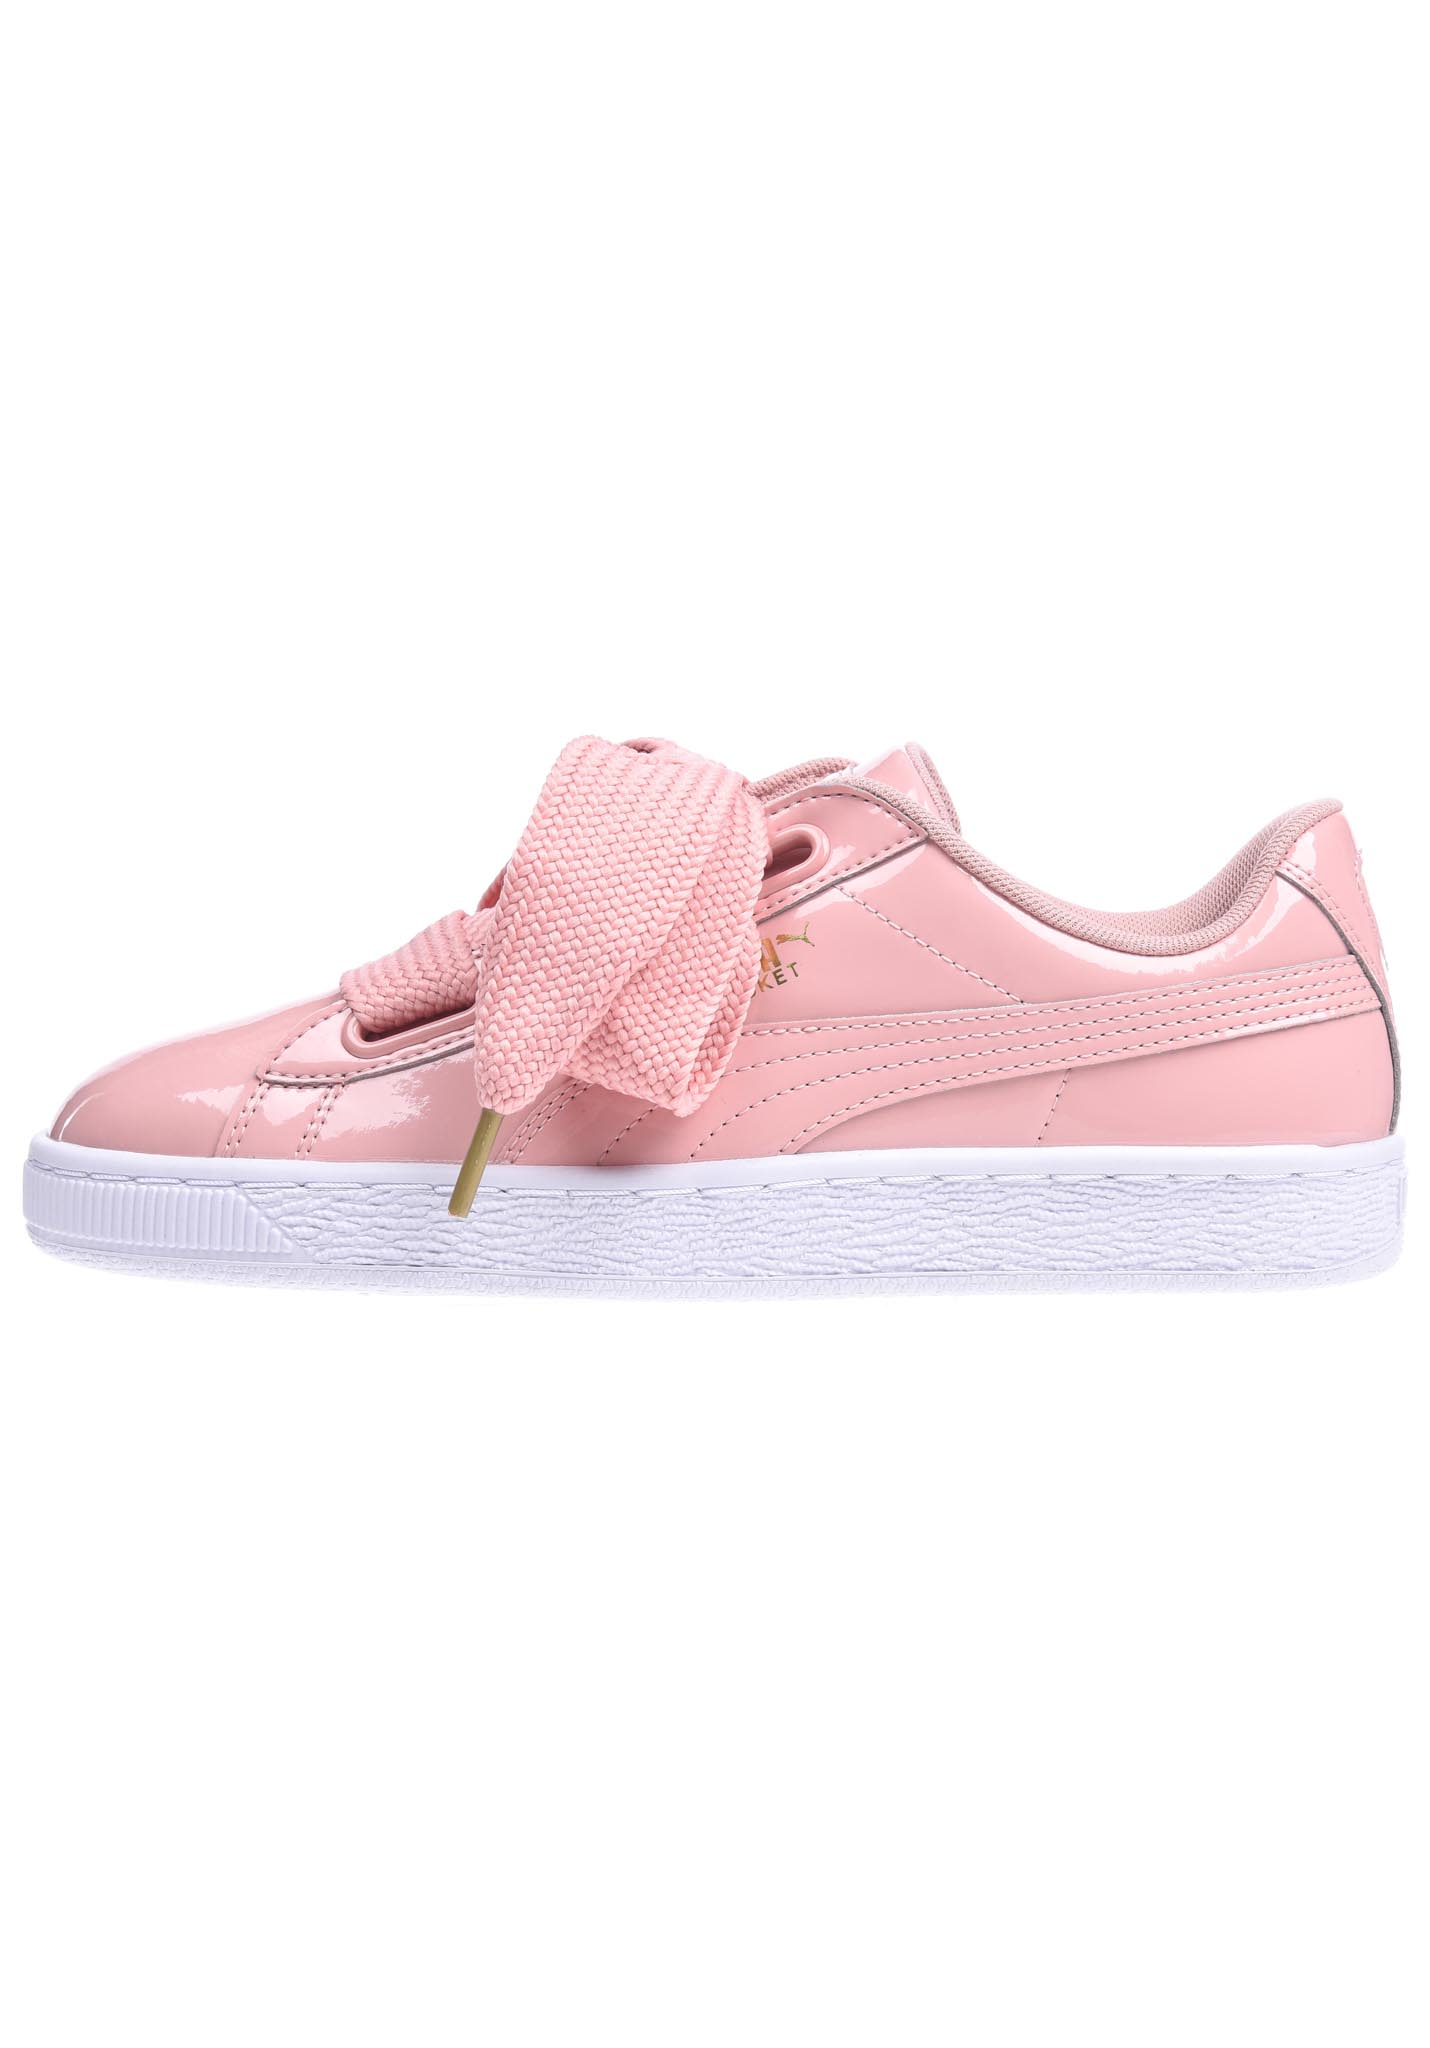 new product 2a1a4 2e87e Puma Basket Heart Patent - Sneakers for Women - Pink